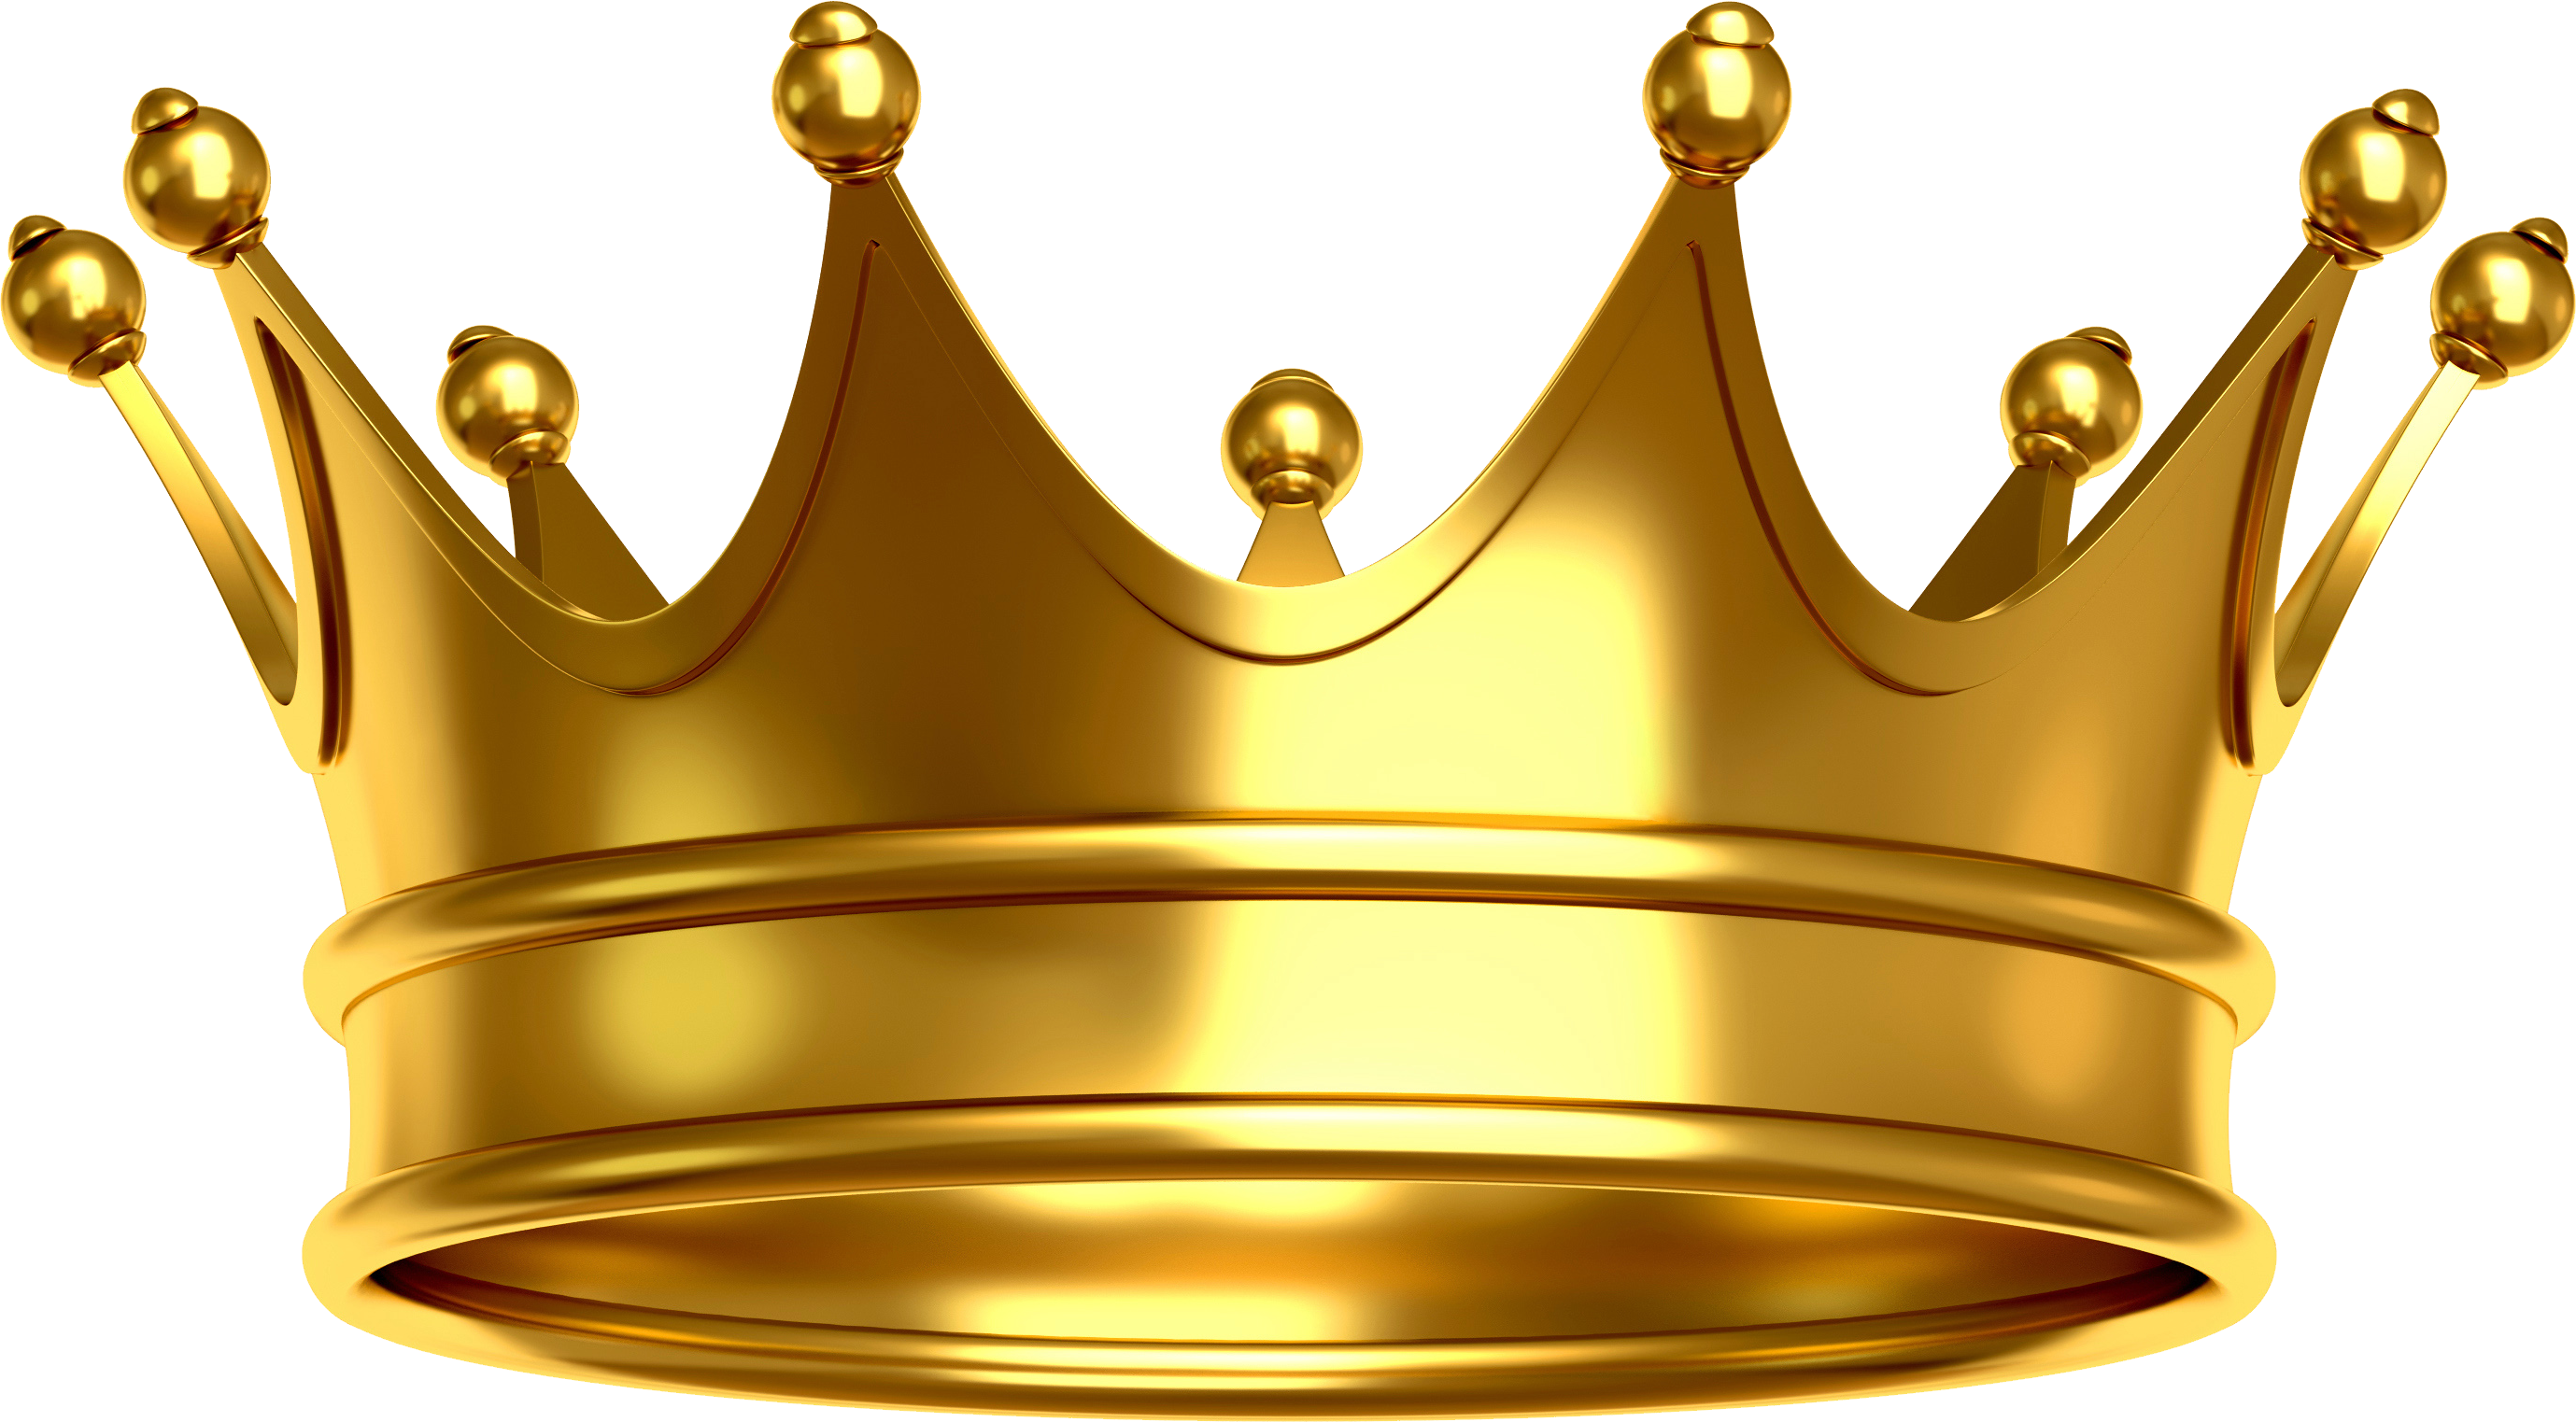 Gold Crown.